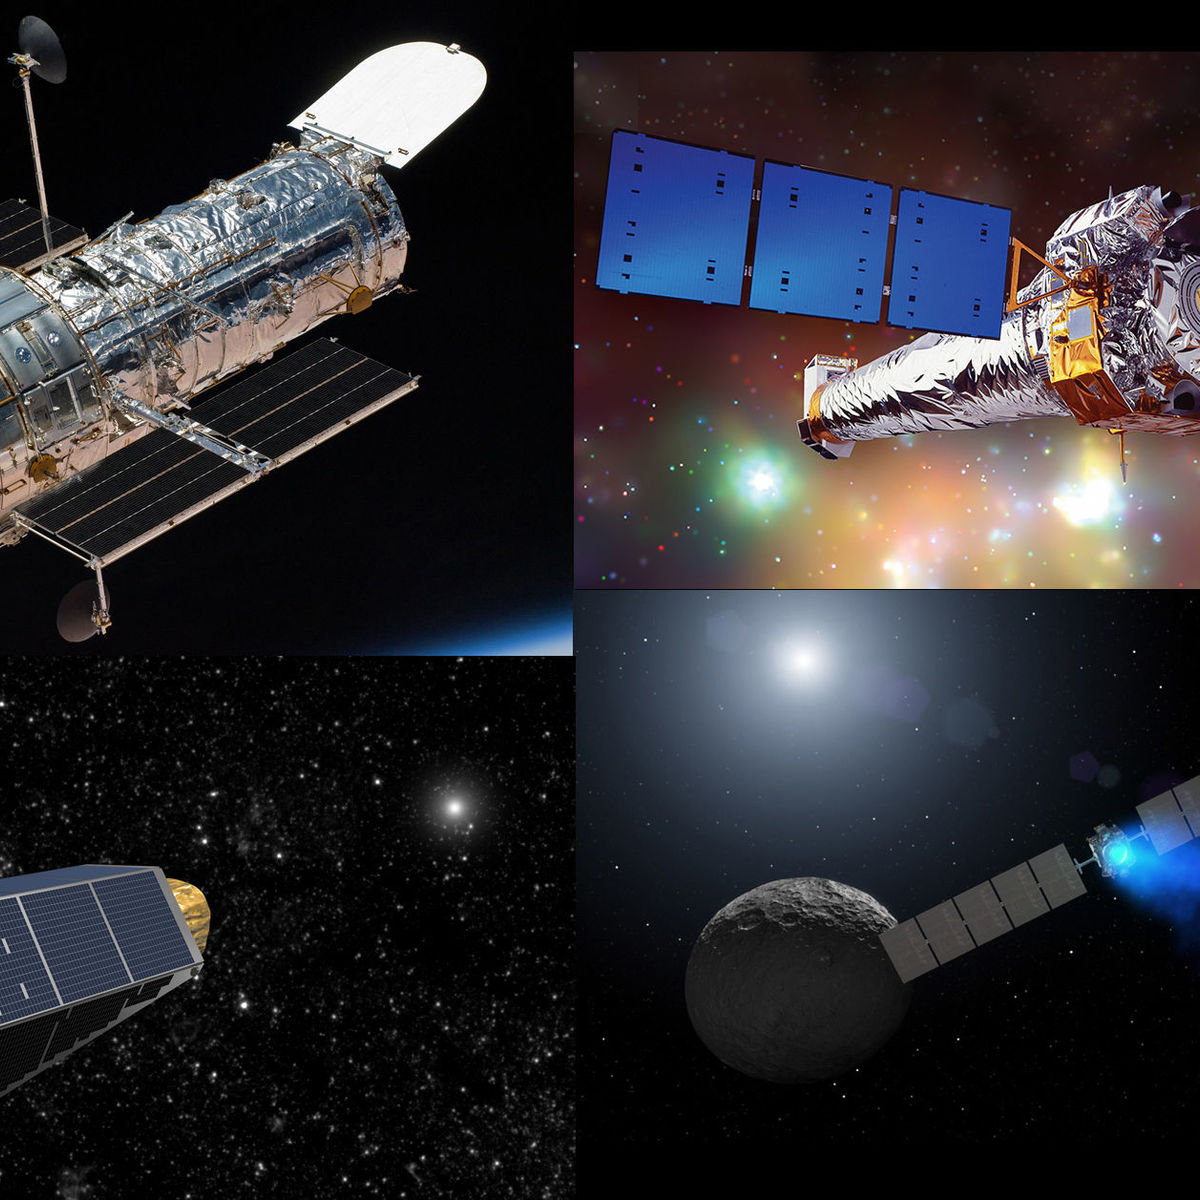 Four great space missions: Hubble (top left), Chandra (top right), Kepler (bottom left), and Dawn (bottom right). Credit (respectively): NASA, NASA/CXC/NGST, NASA, NASA/JPL-Caltech